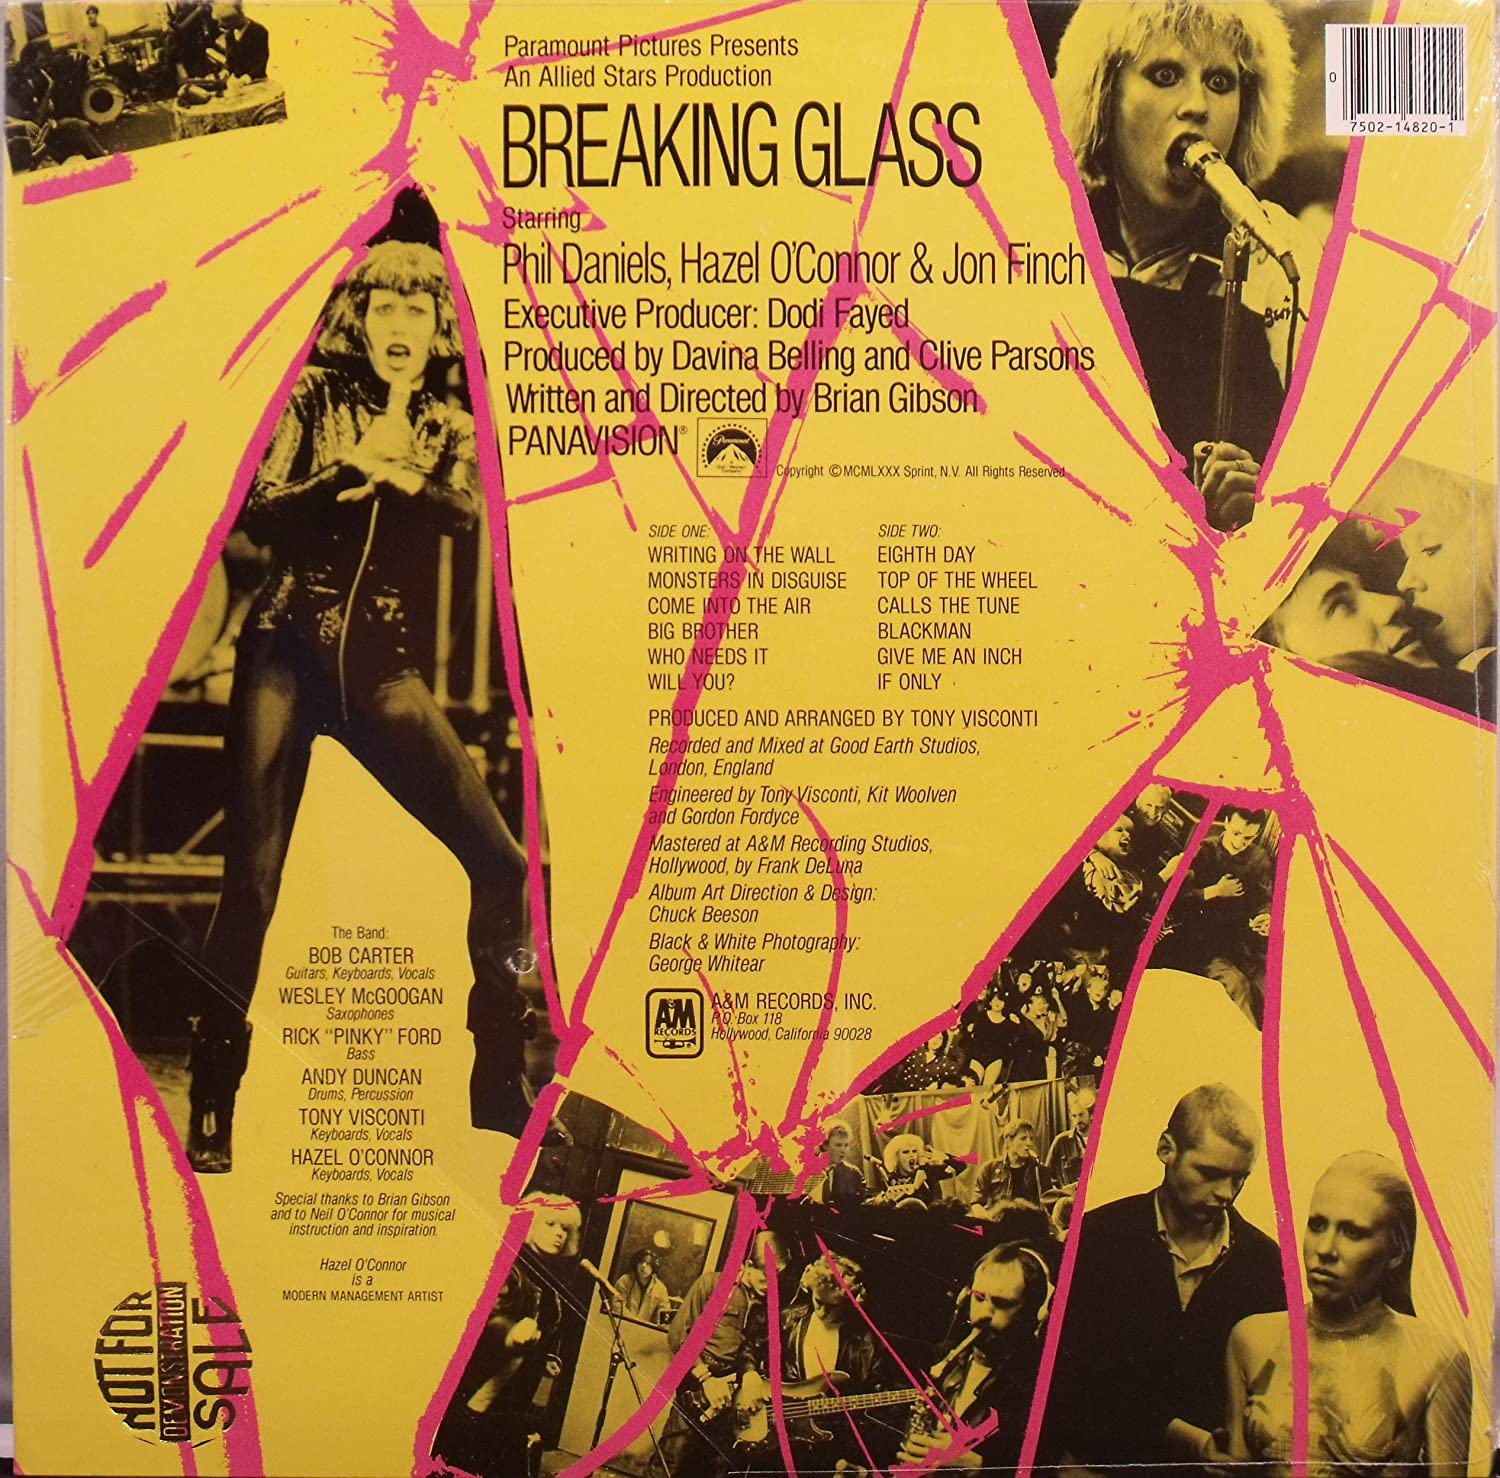 Breaking glass (US, 1980) / Vinyl record [Vinyl-LP] - Amazon.com Music